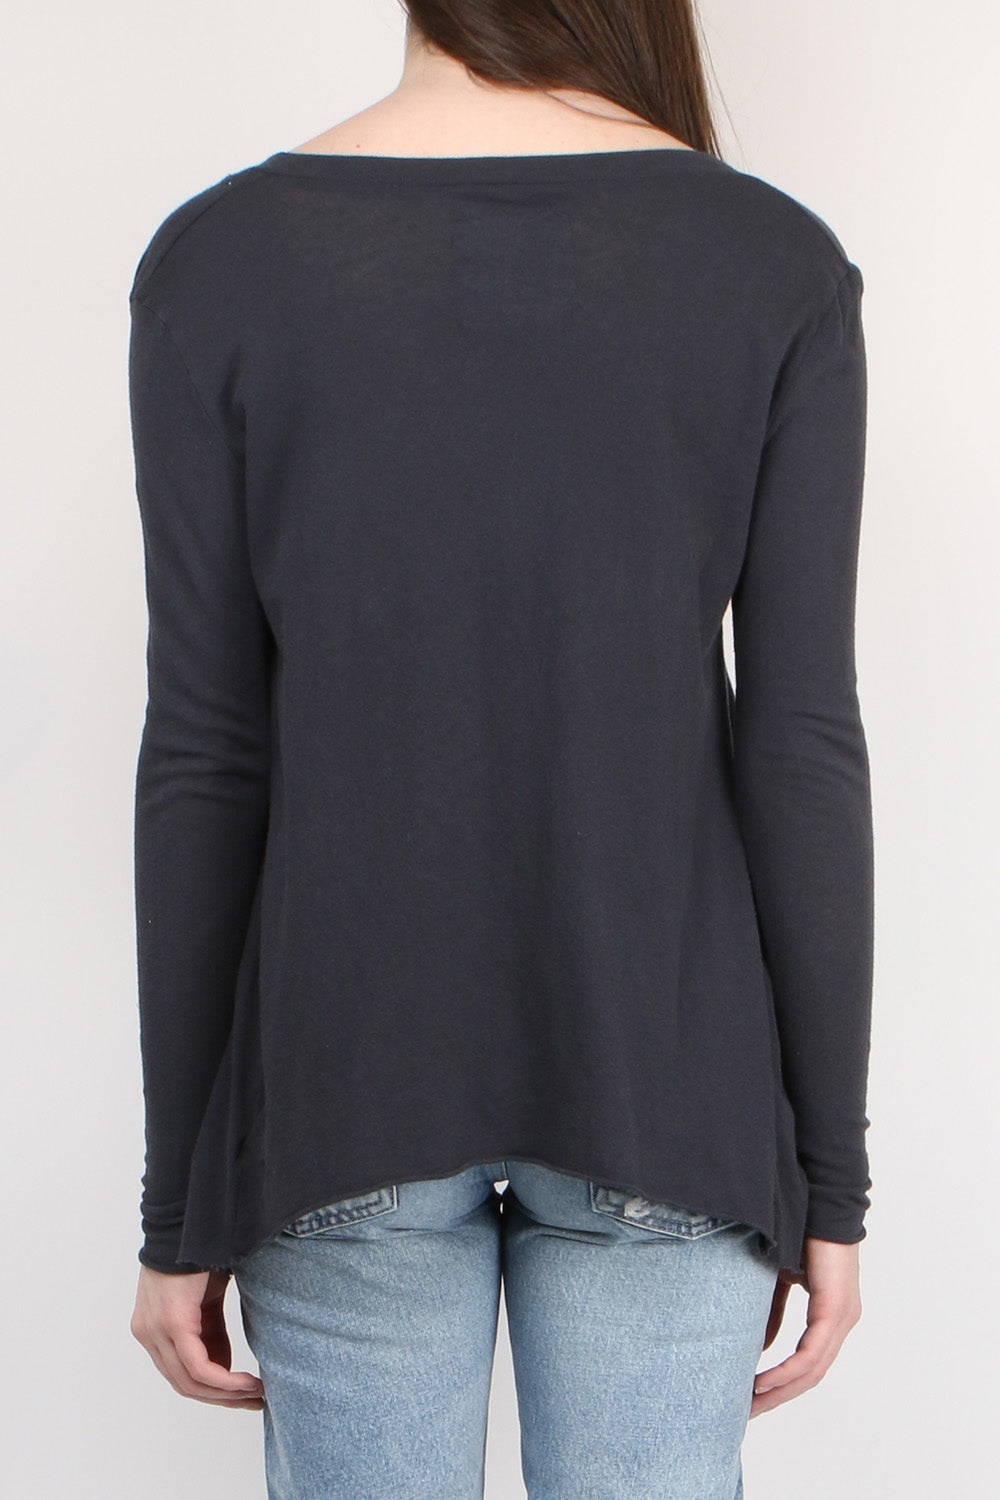 Tee Lab by Frank & Eileen Deep V Long Sleeve Tee in Carbon